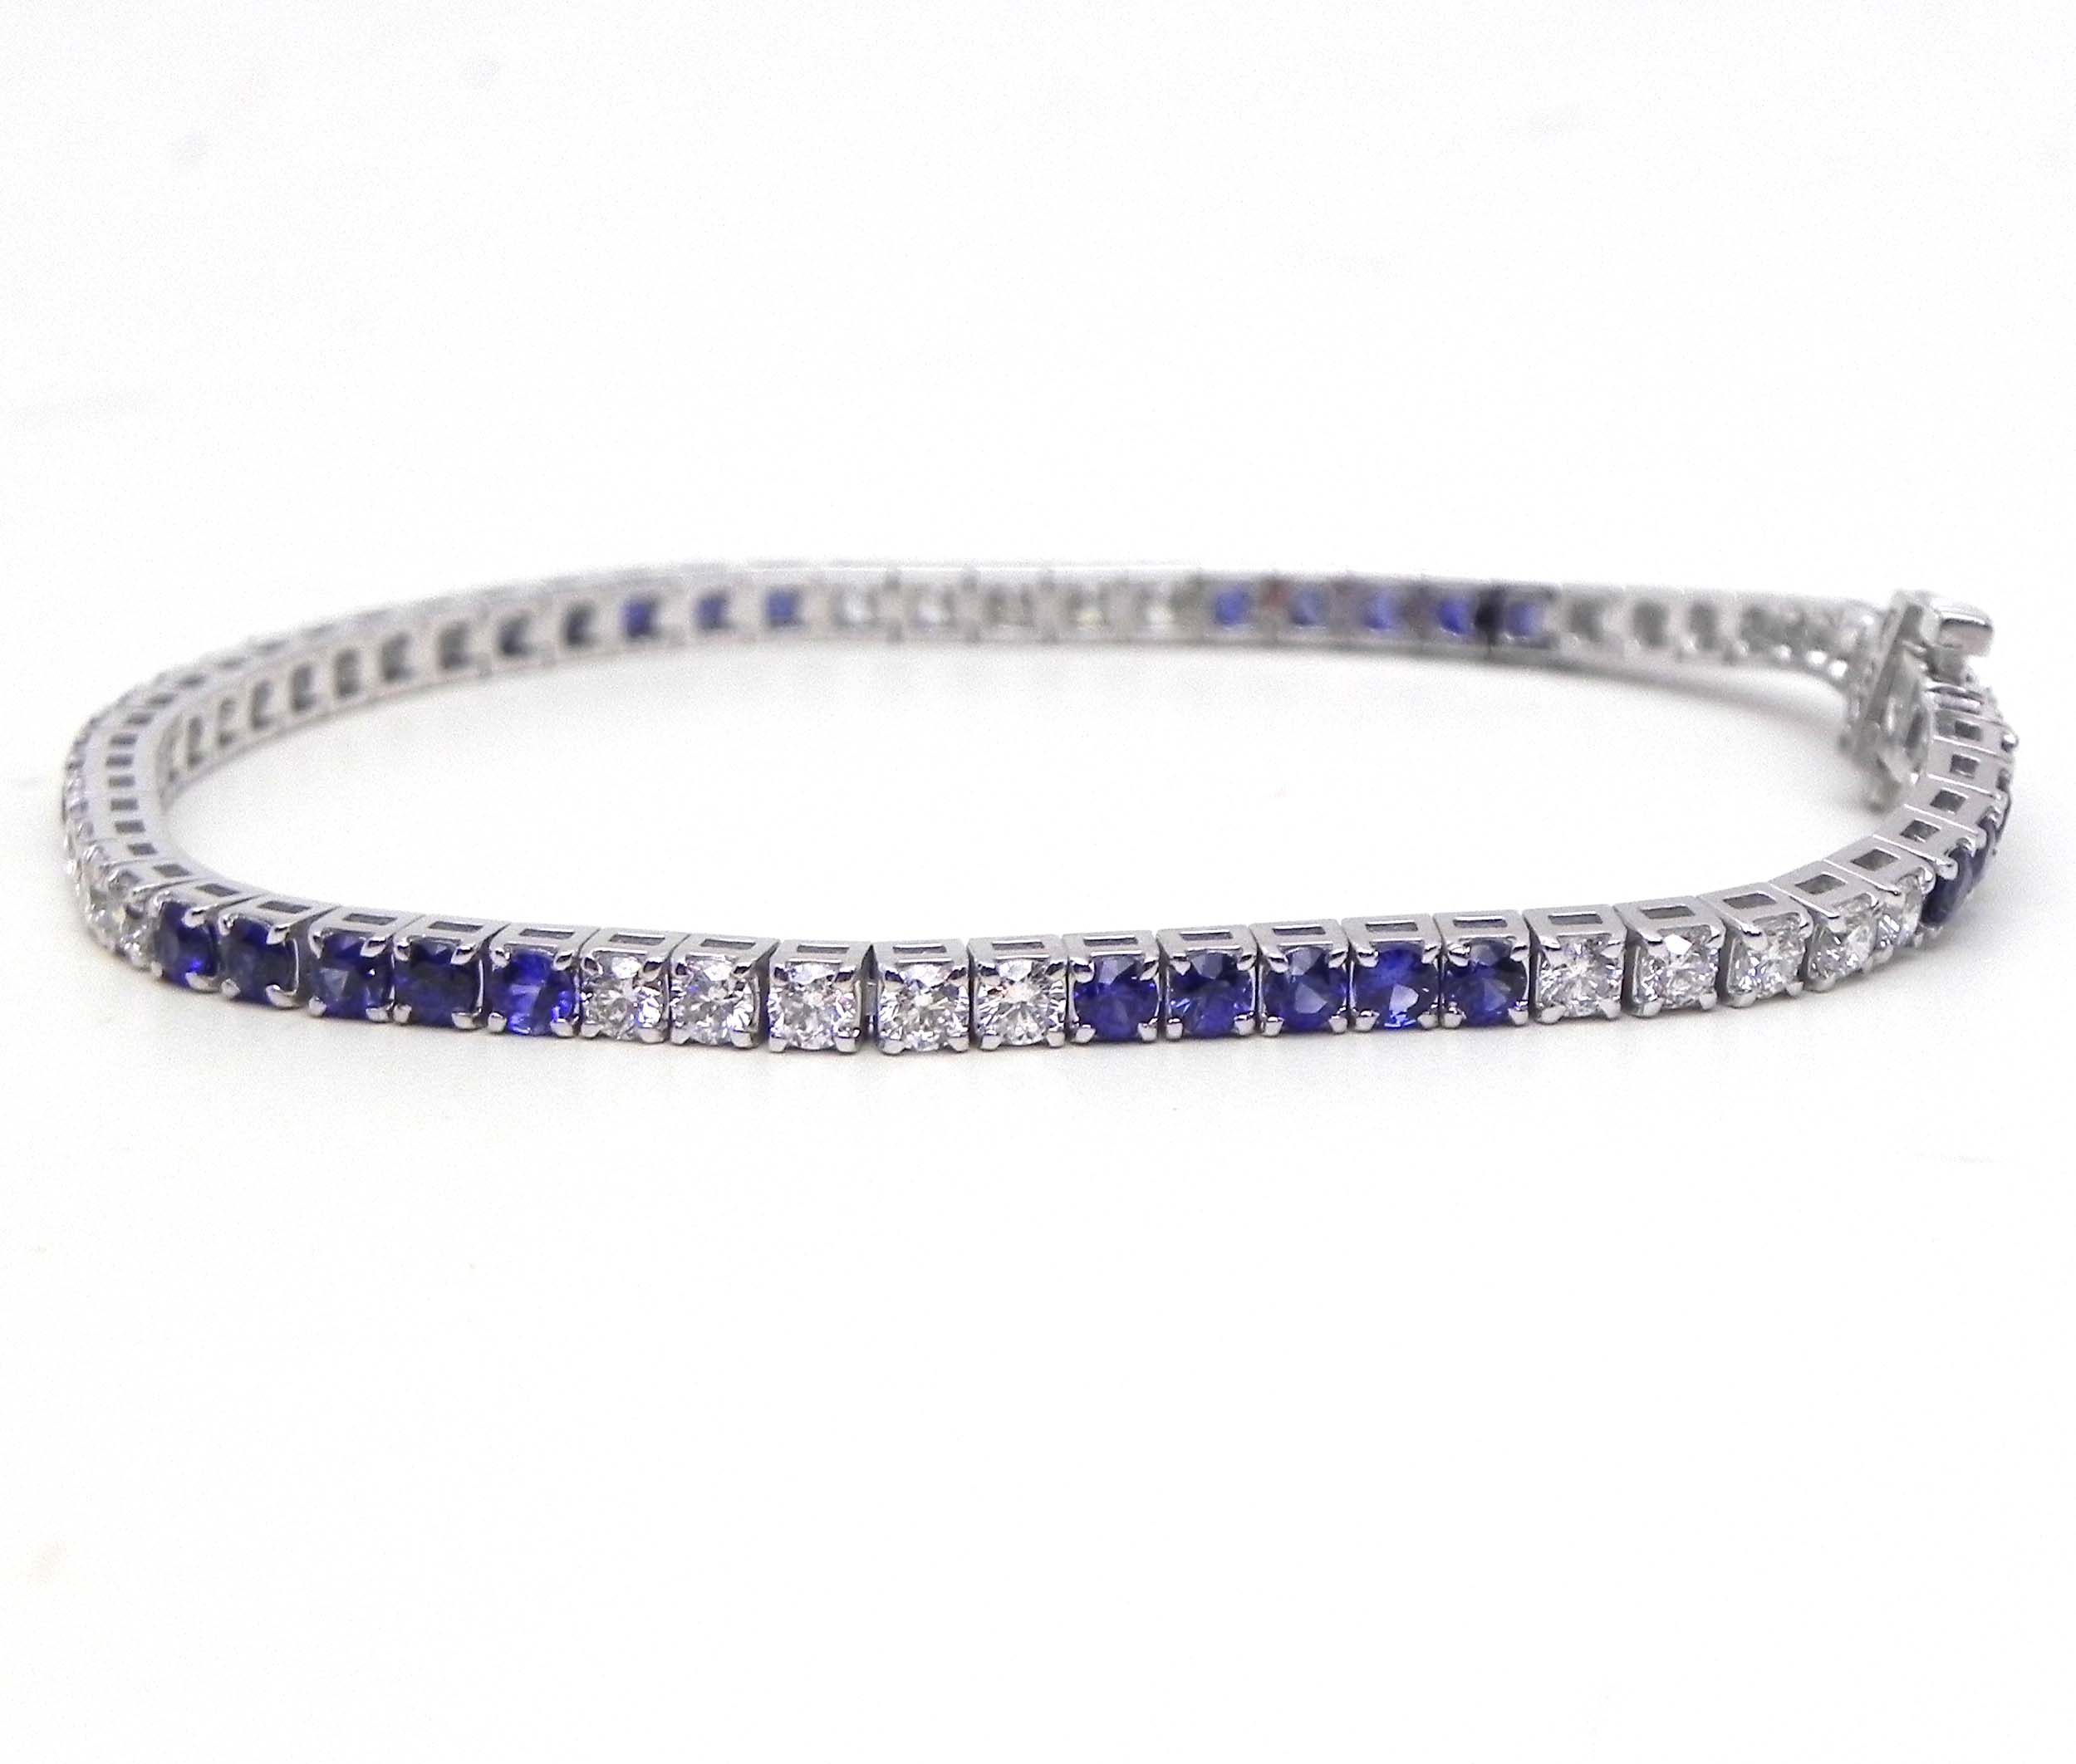 Ladies 14k White Gold Blue Sapphire Amp Diamonds Tennis